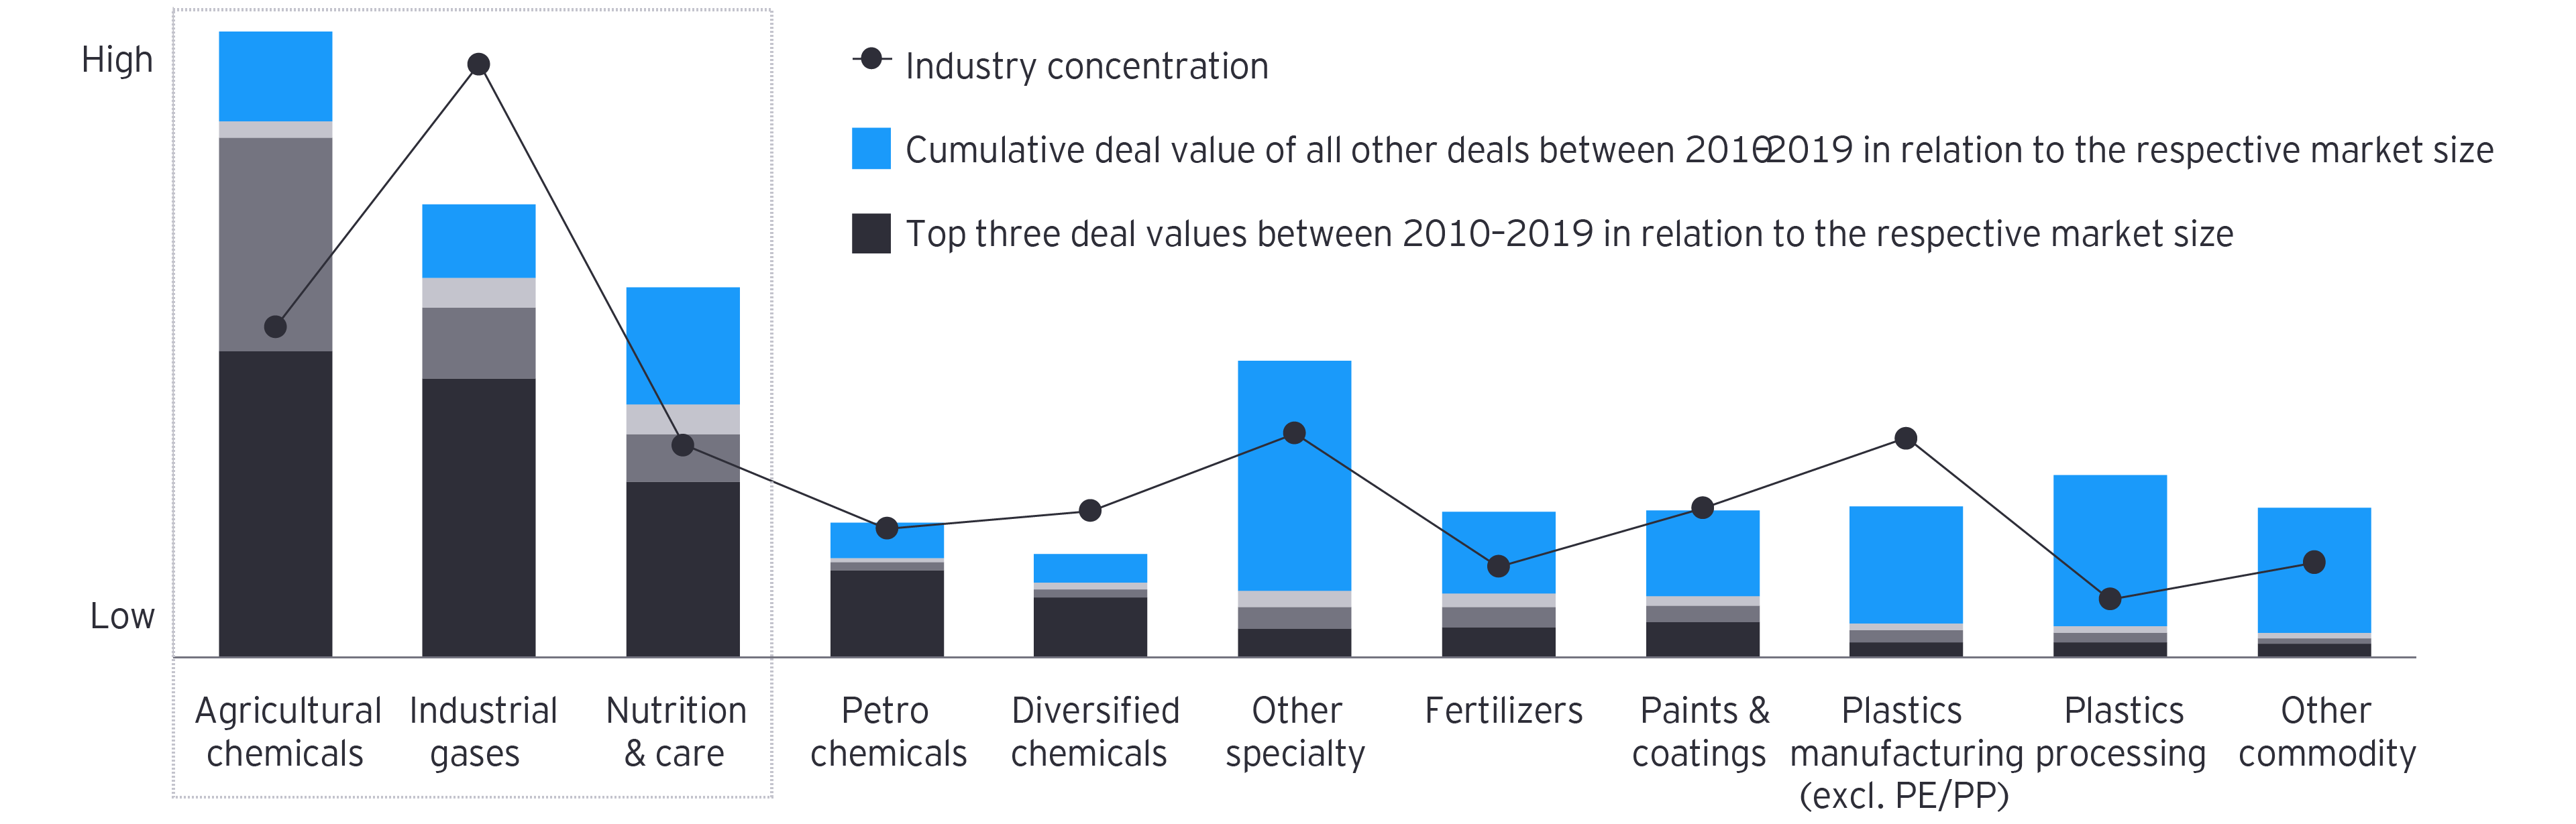 Figure 4: M&A activity in relation to the respective market size and industry concentration by subsector, 2010–19